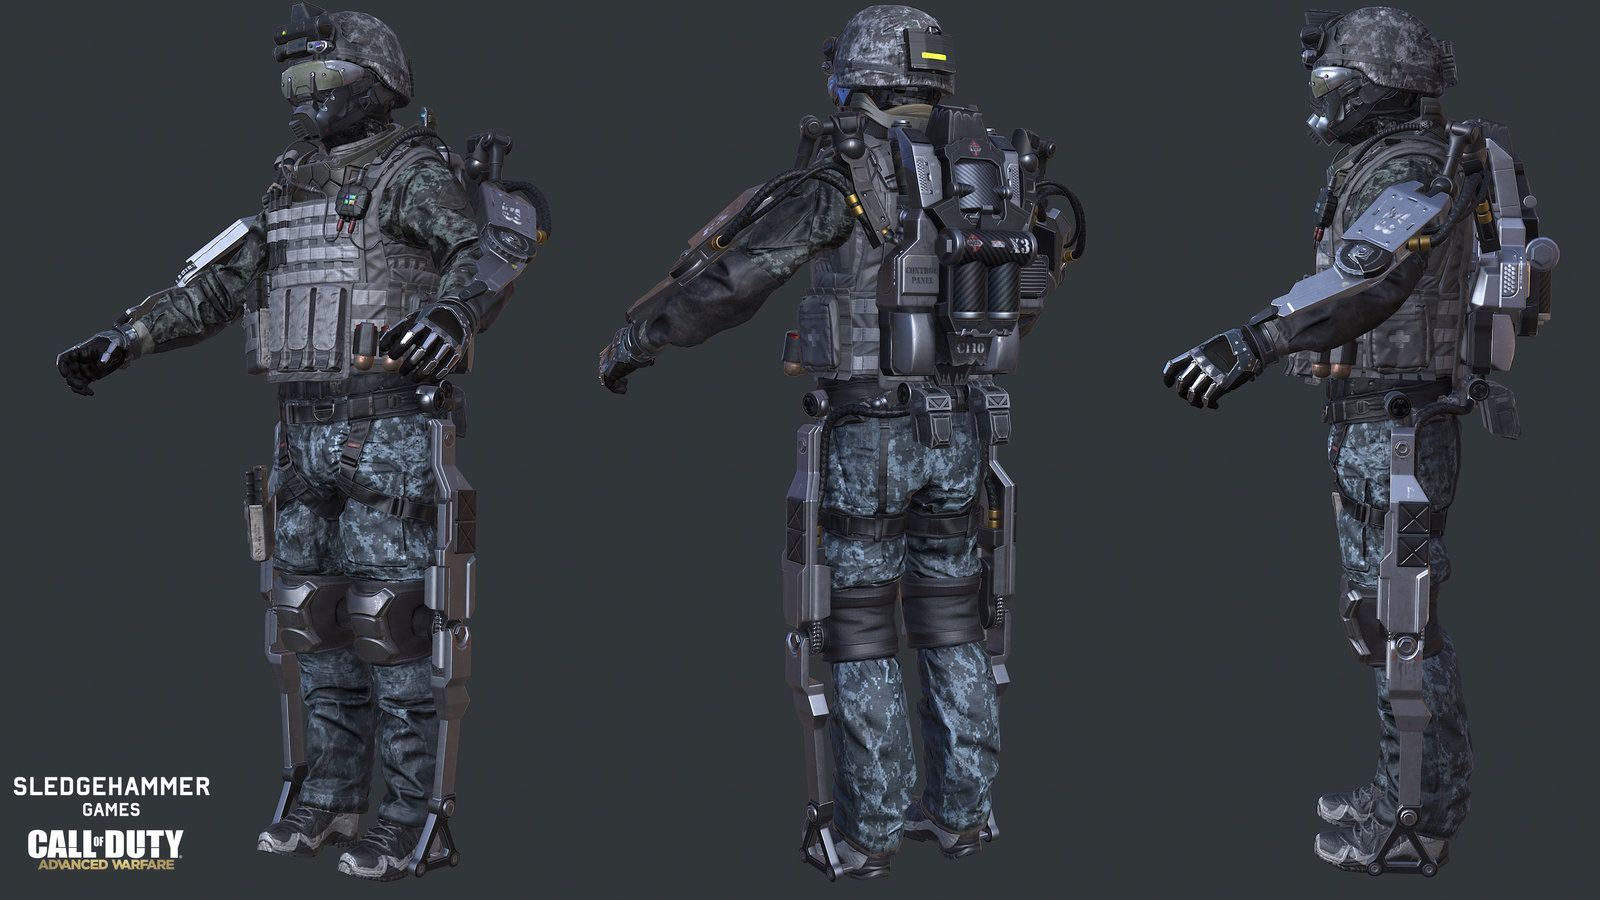 Pin by basti maniego on COD AW in 2019 | Marine gear